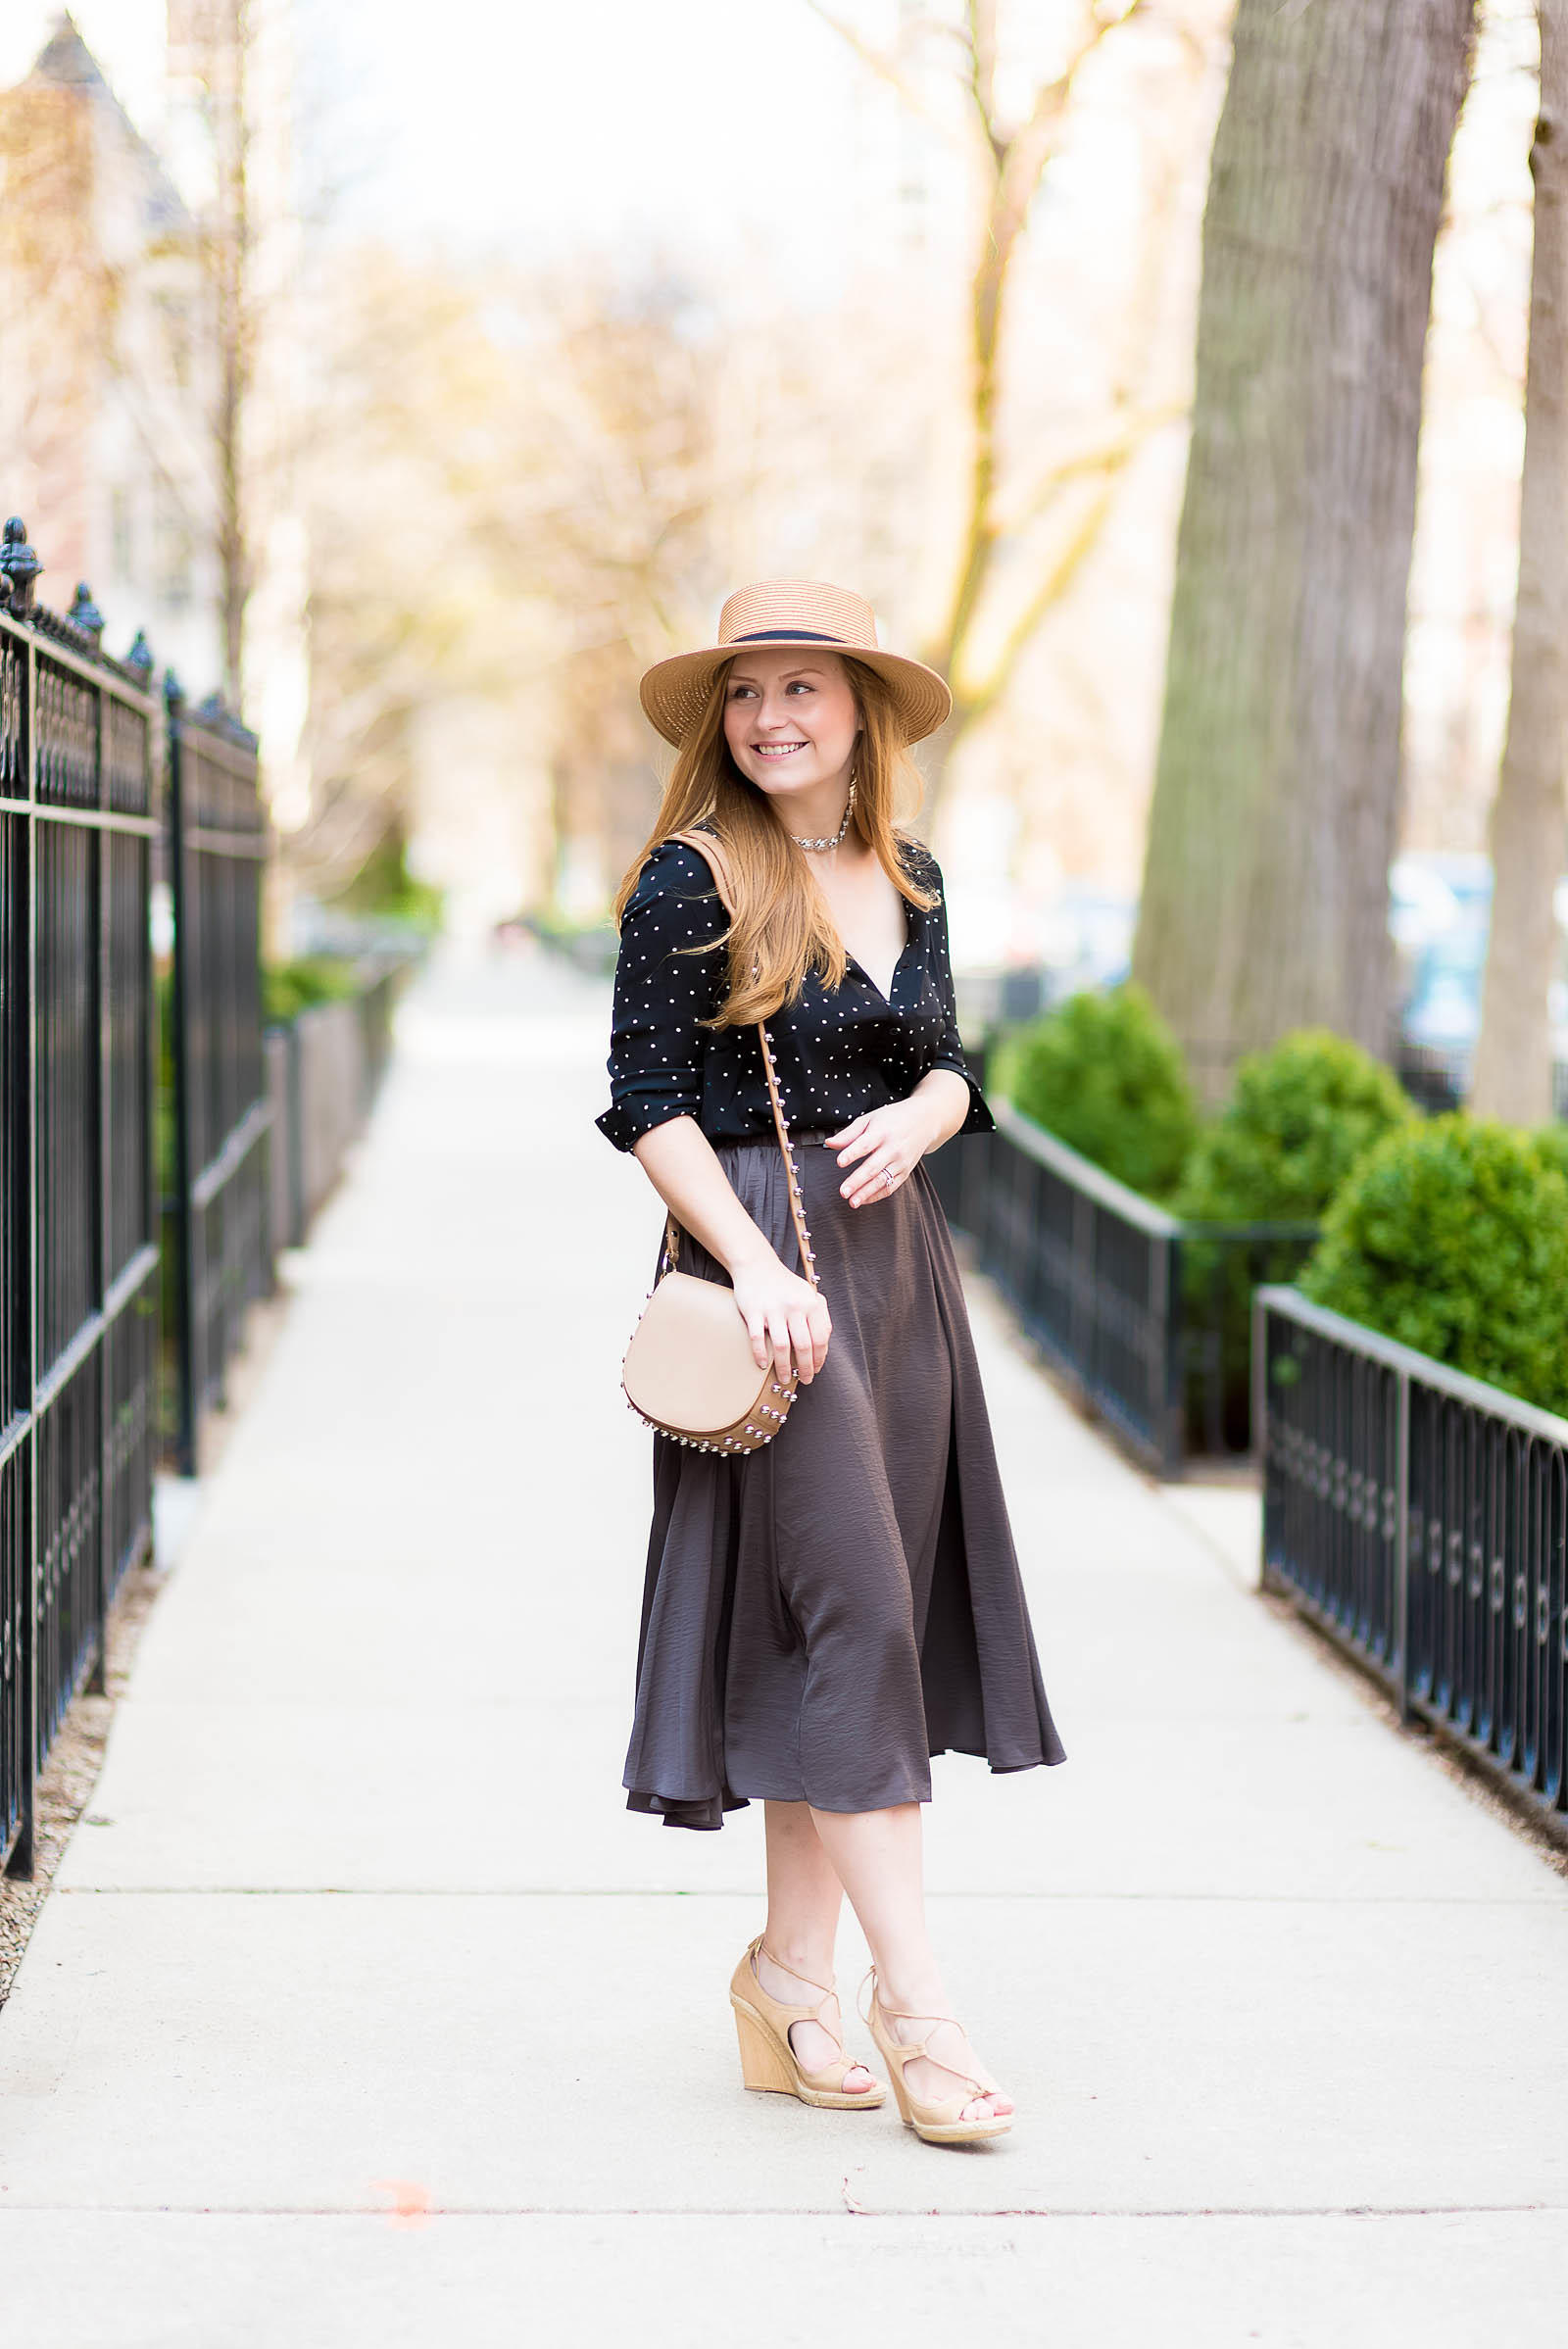 Summer Midi Skirt Outfit Boater Hat Alexander Wang Aquazzura